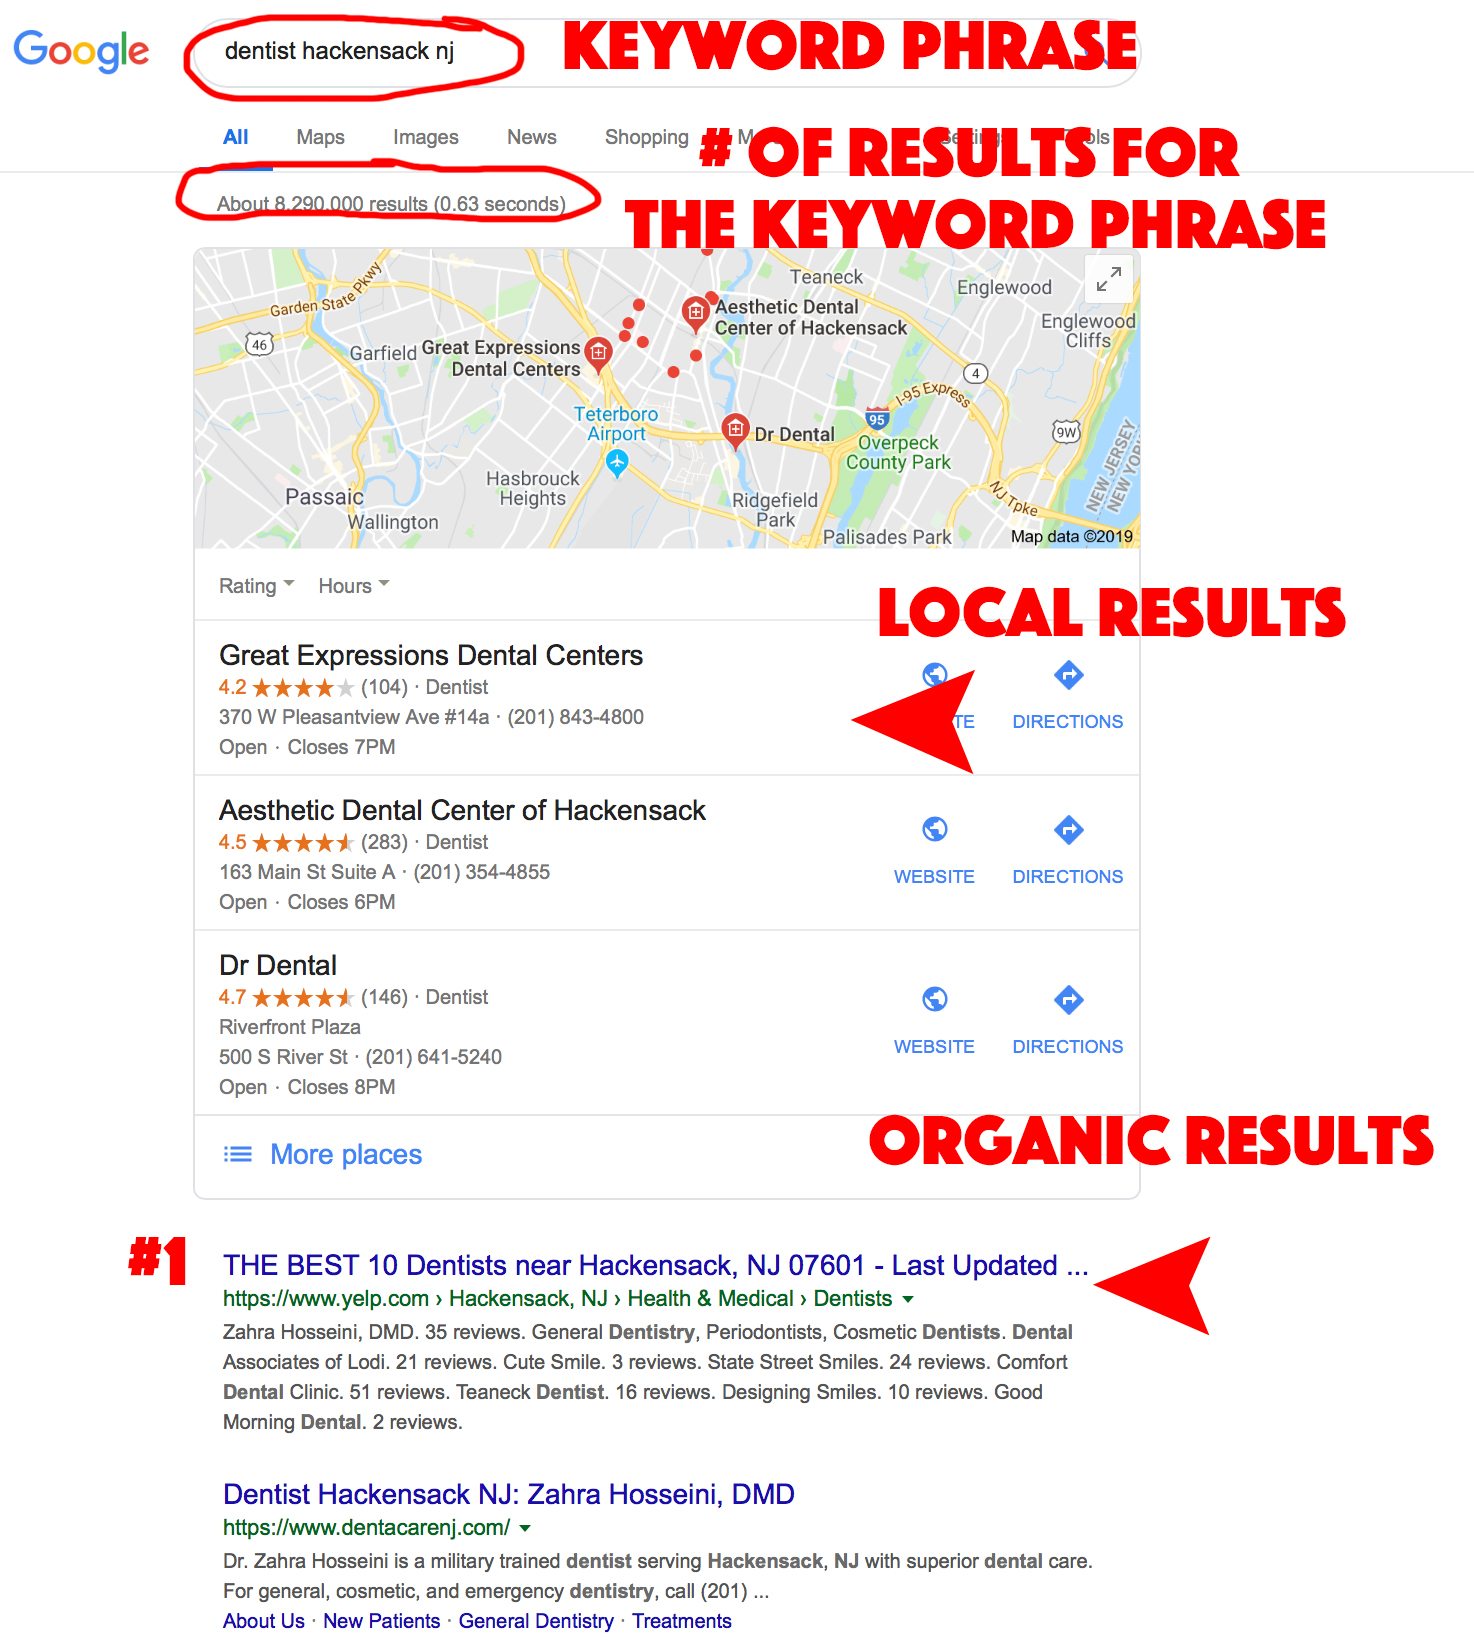 Organic and Local Search Results